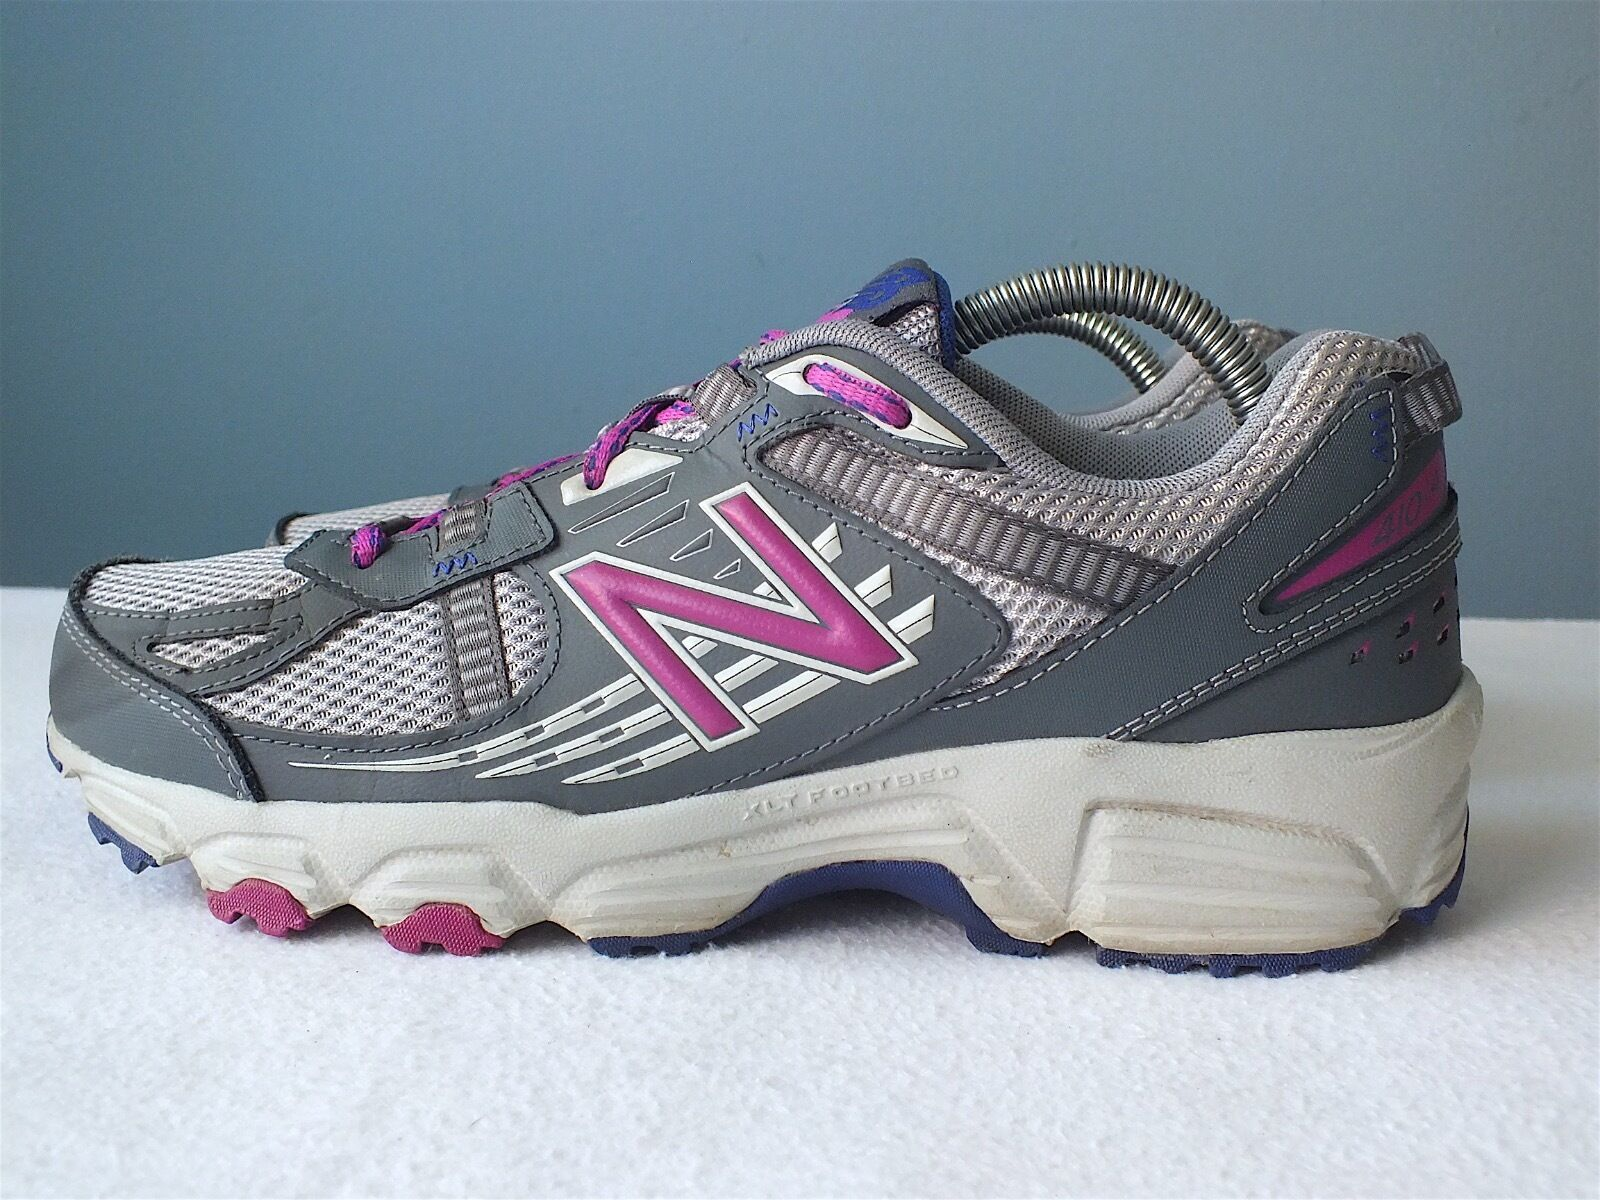 New 410 Balance 410 New V4 Gris  Donna Trail  In esecuzione scarpe Gris  V4   e1ae47